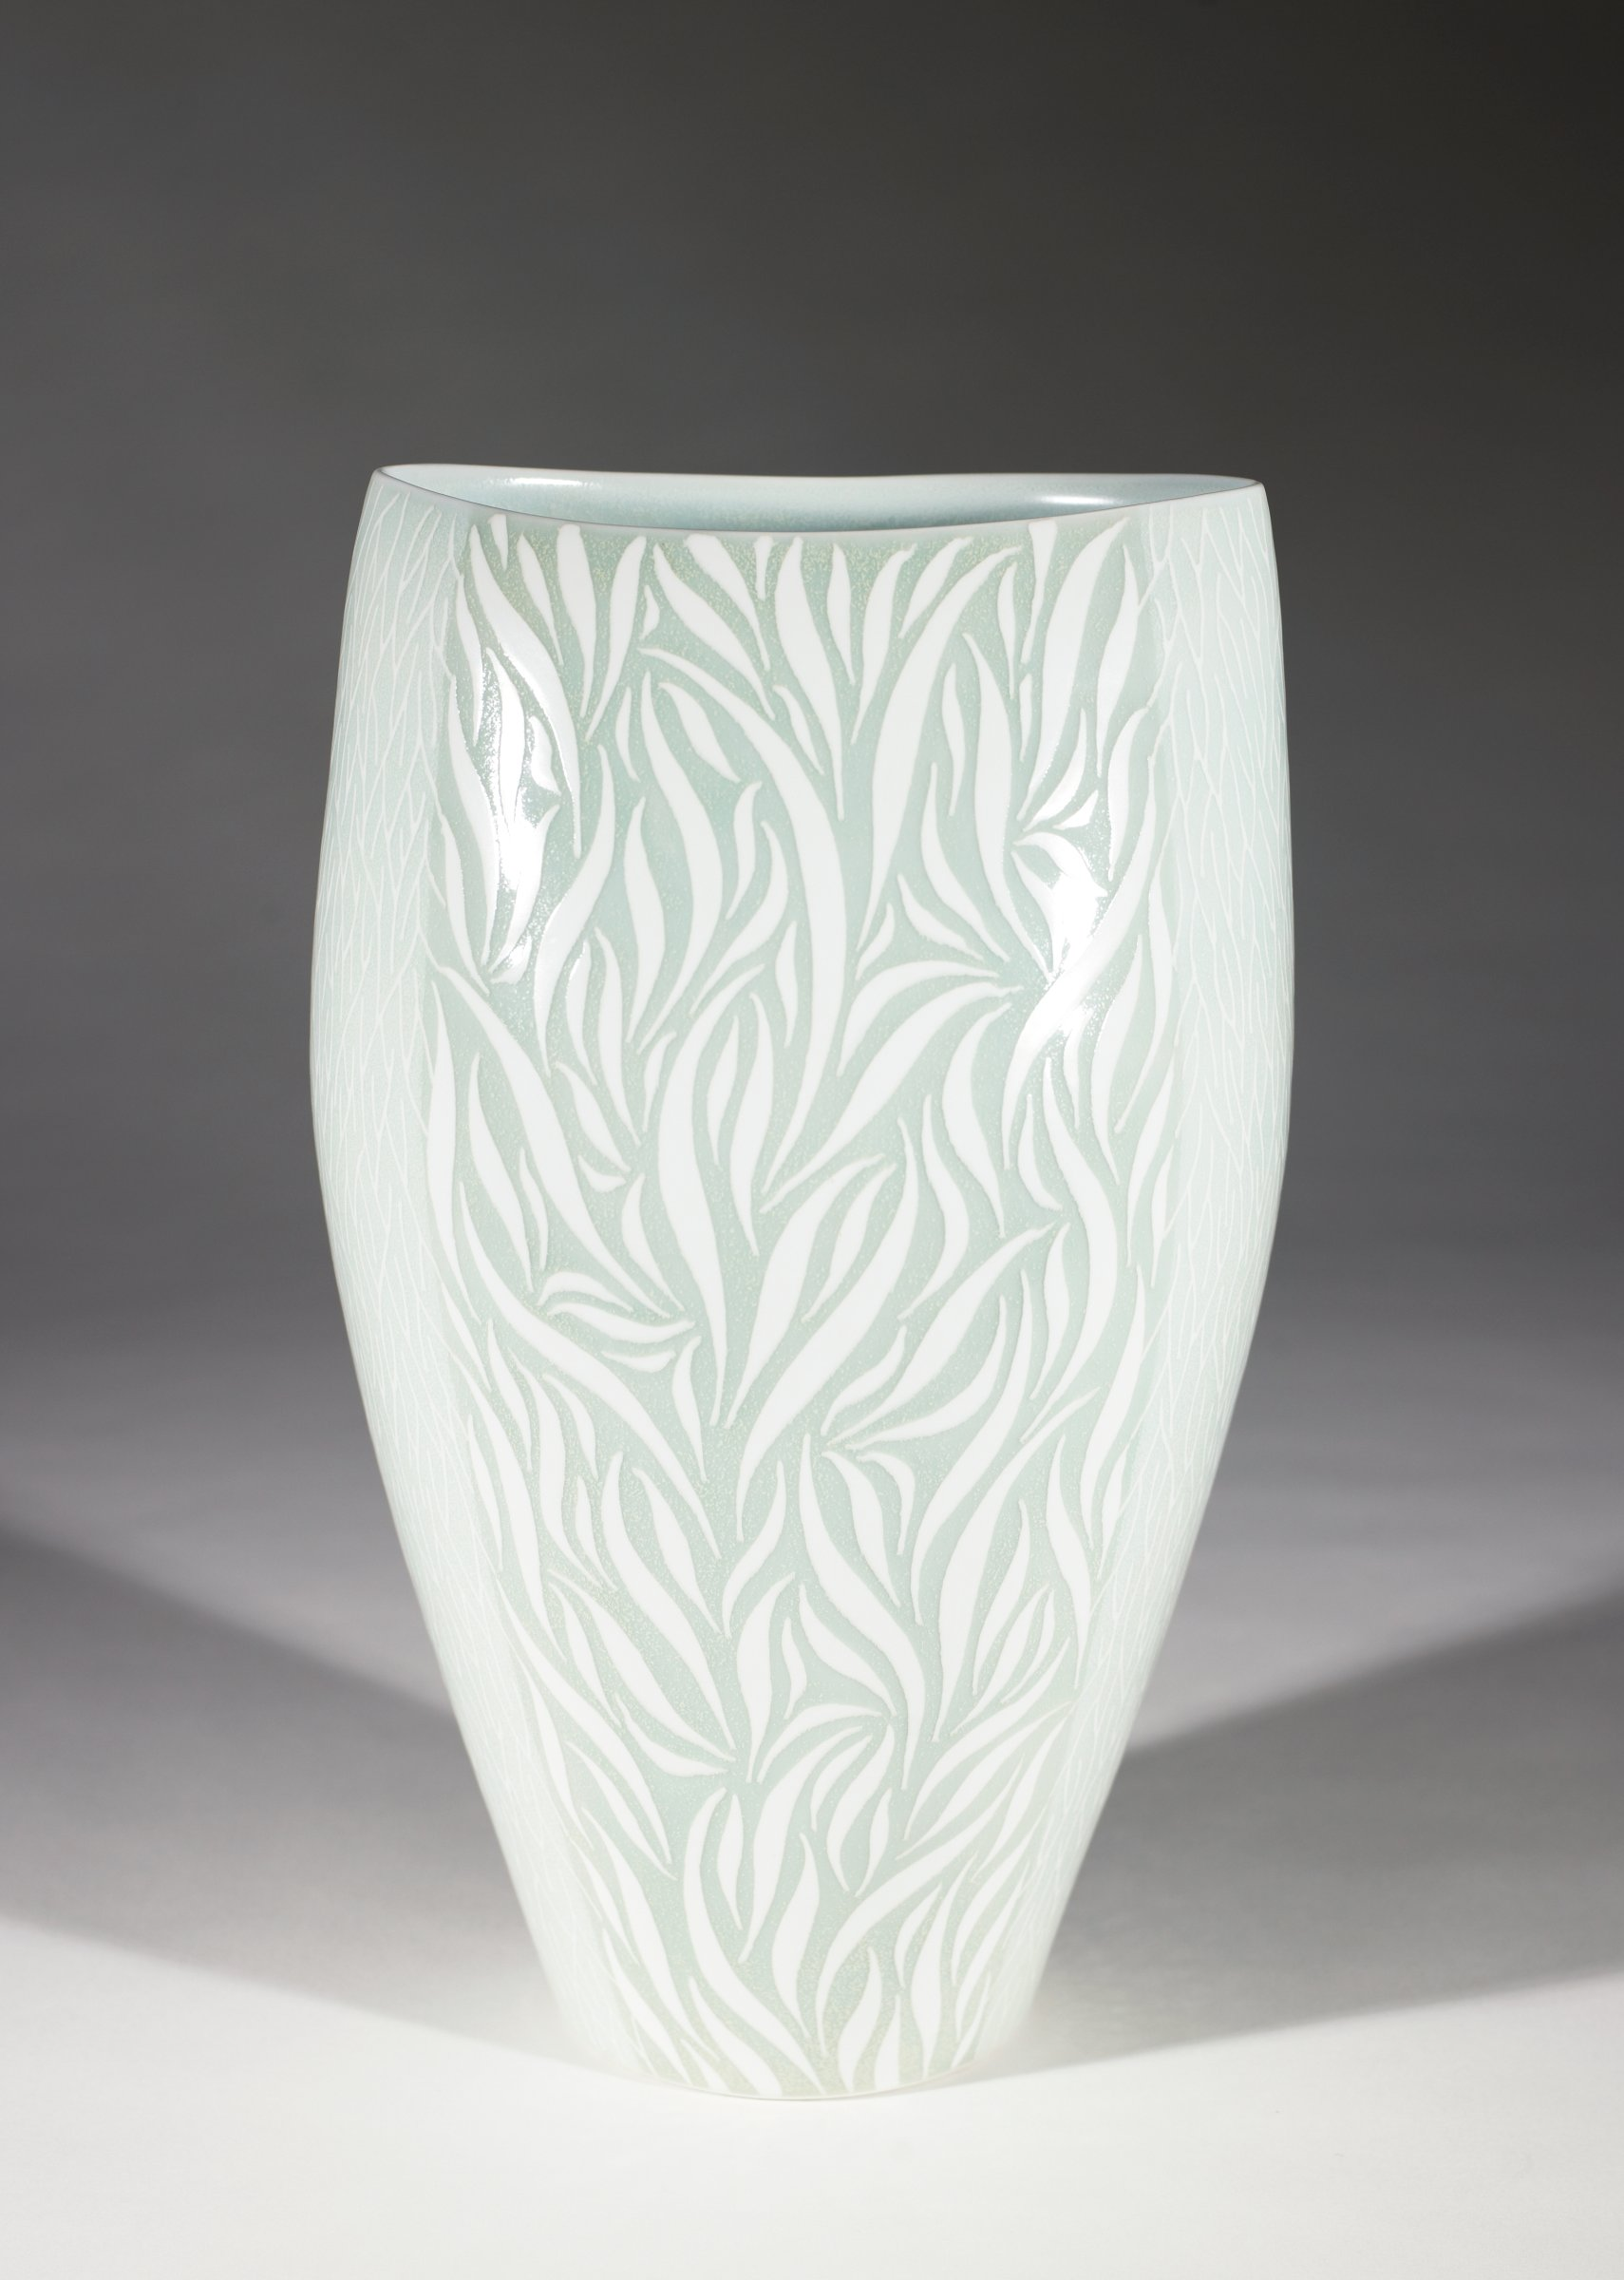 Large, heavy porcelain vase of semi-ovoid form, covered with a celadon glaze both inside and out, the body divided into sections and inlaid in white in a design in two sections of larger twig motifs and in the other two of smaller twig motifs.